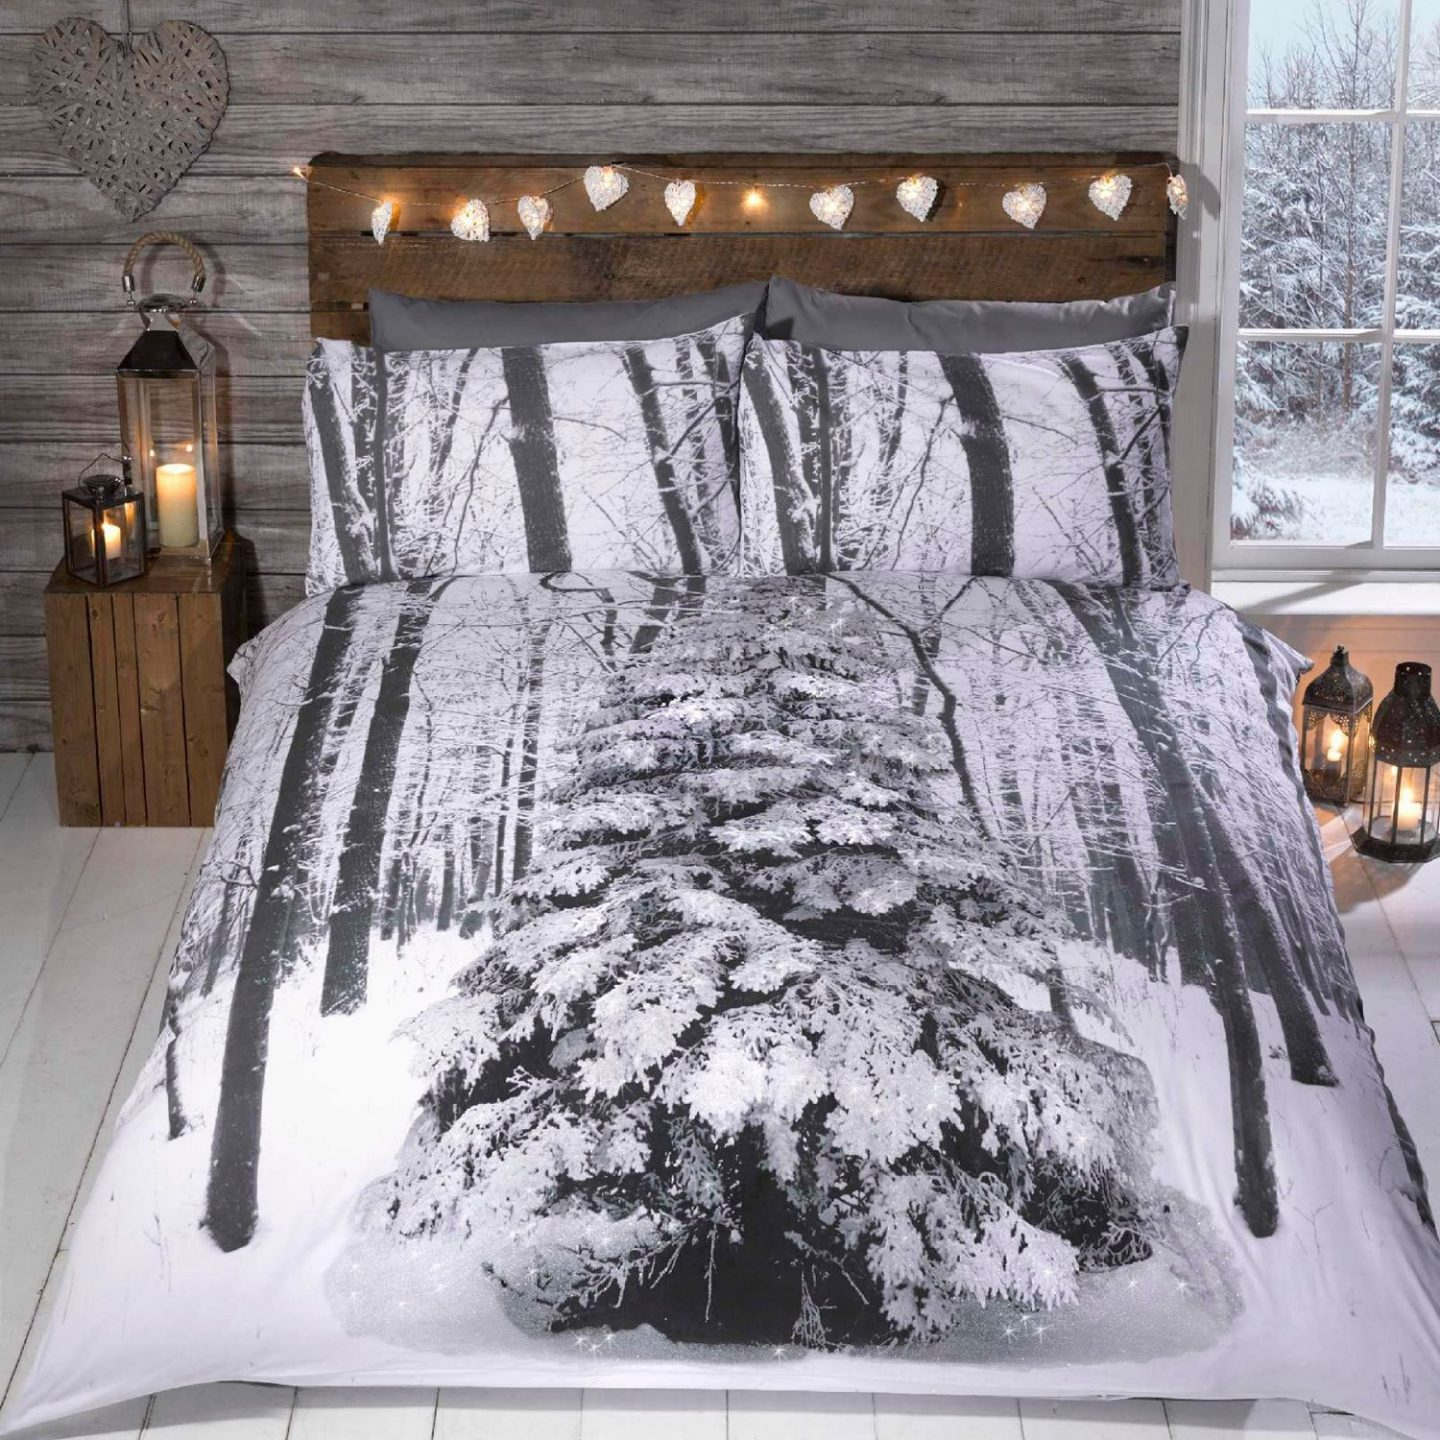 Best Christmas bedding - Snow scene from Amazon